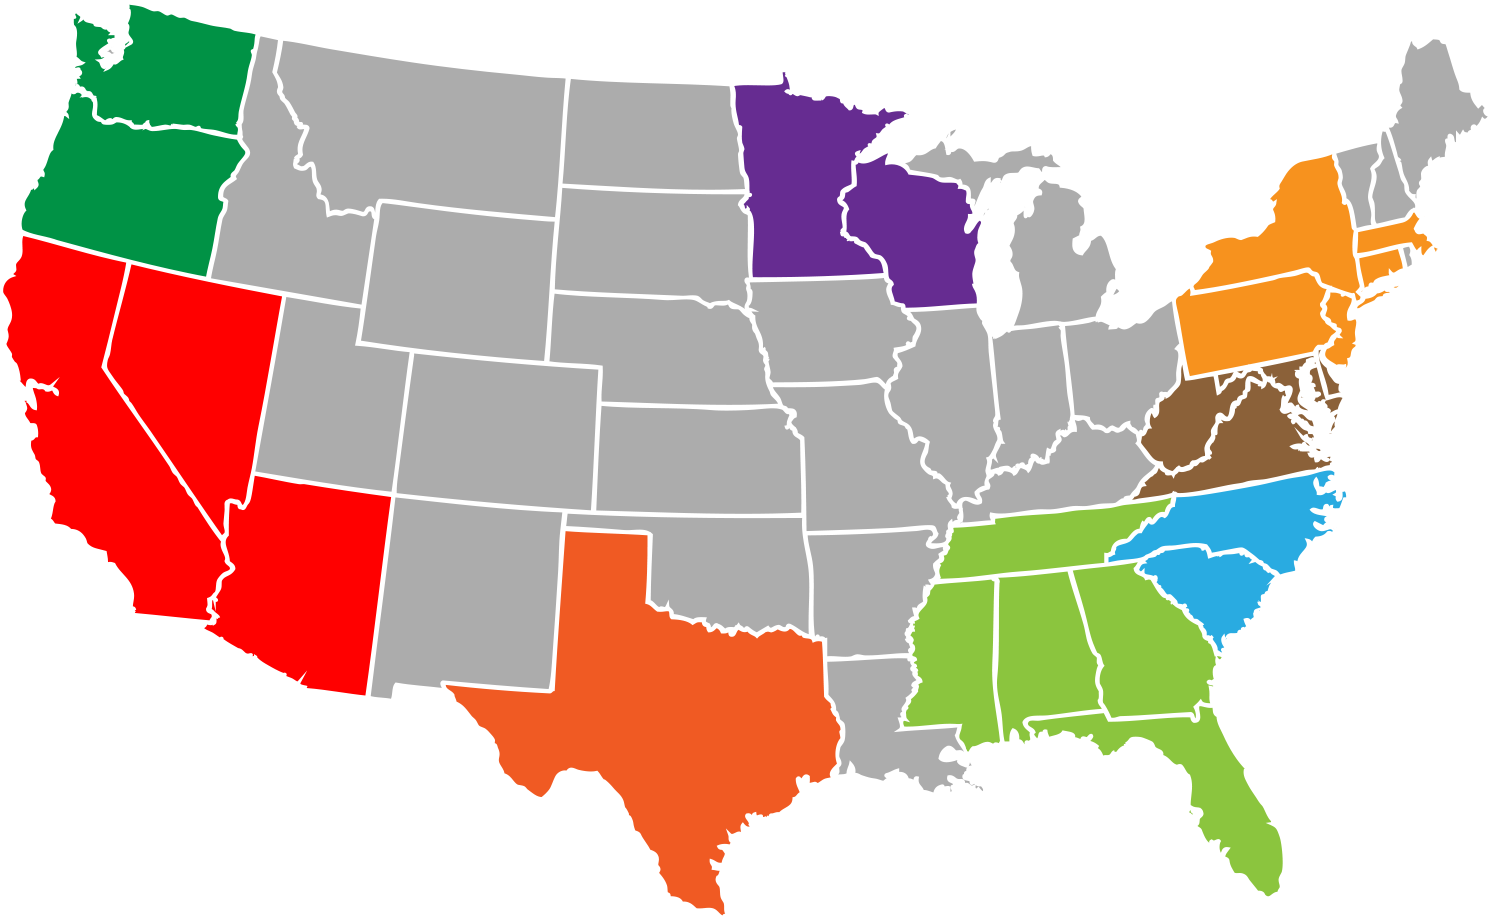 U.S. regions served by RoadStallion